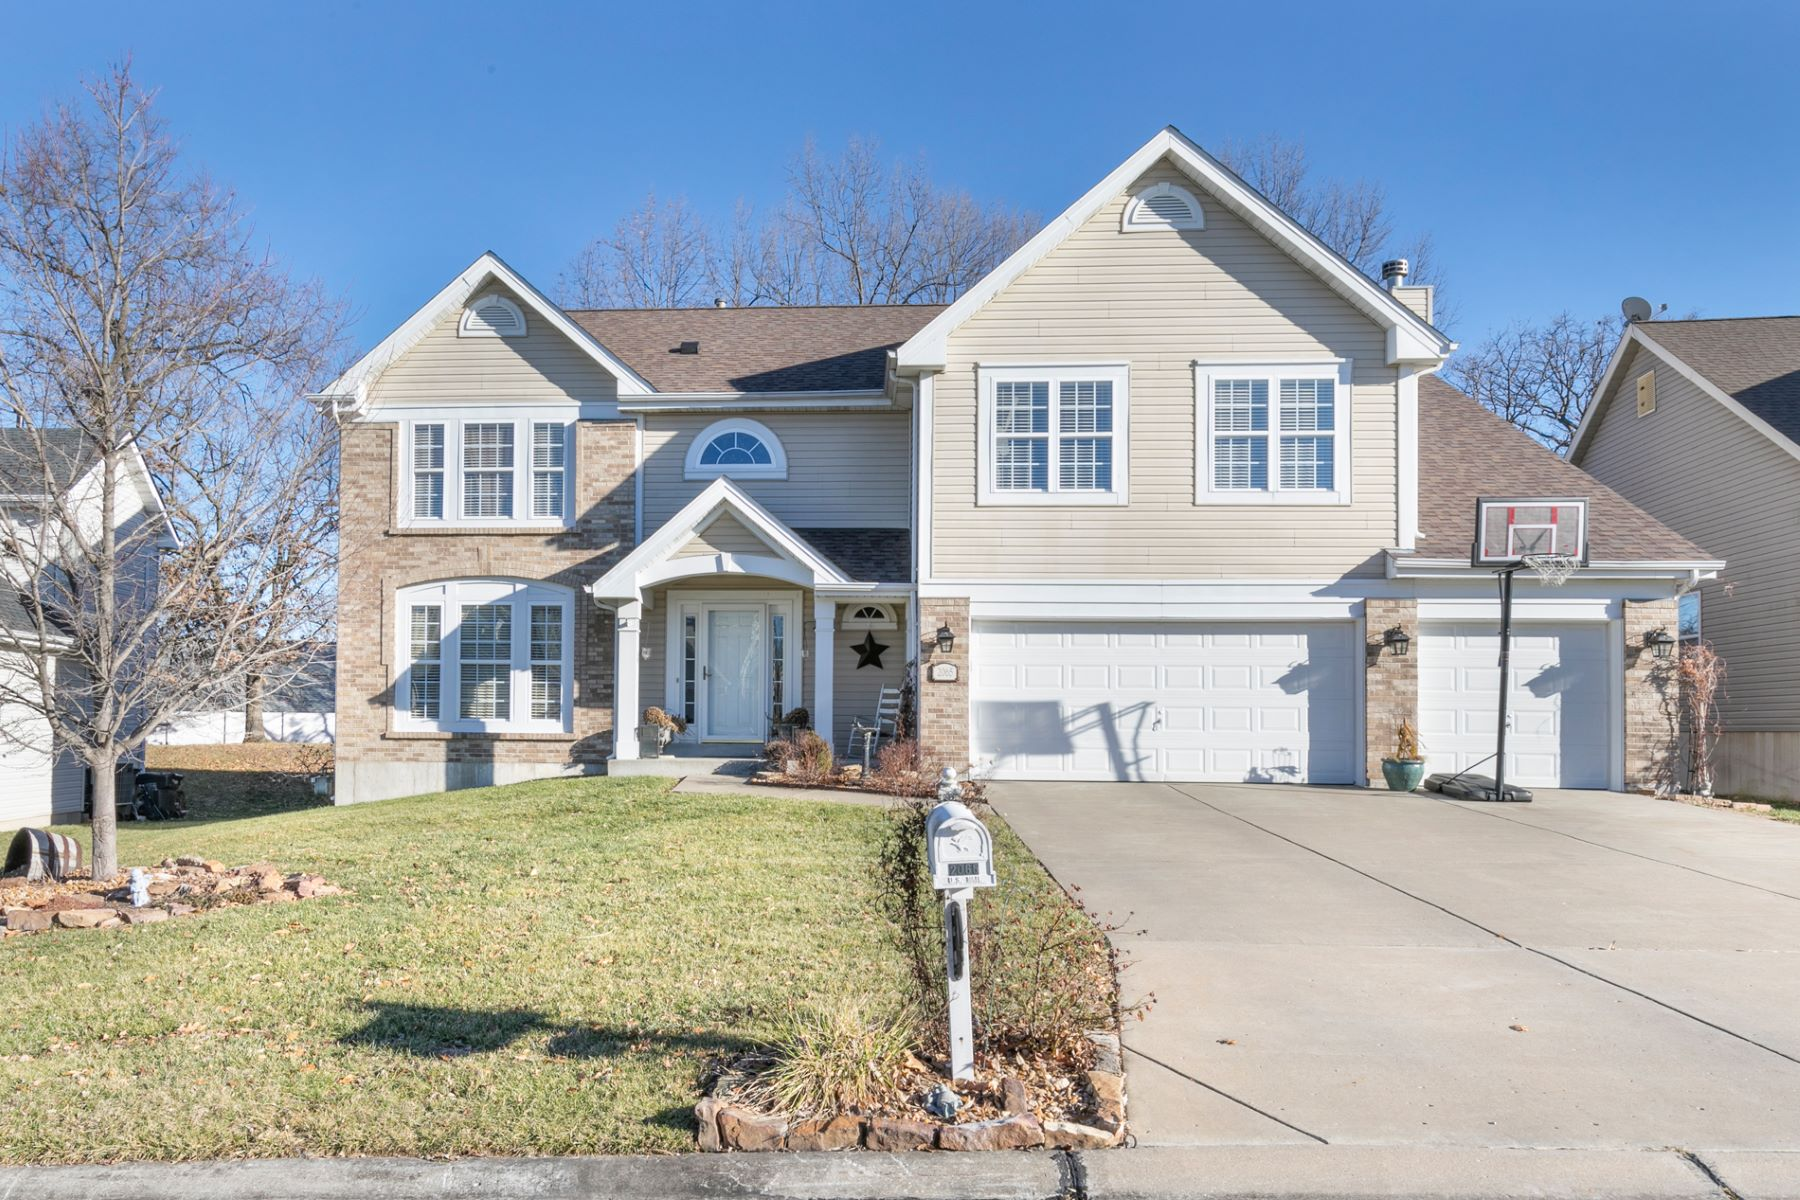 Property for Sale at Williamstown Dr 2065 Williamstown Dr St. Peters, Missouri 63376 United States